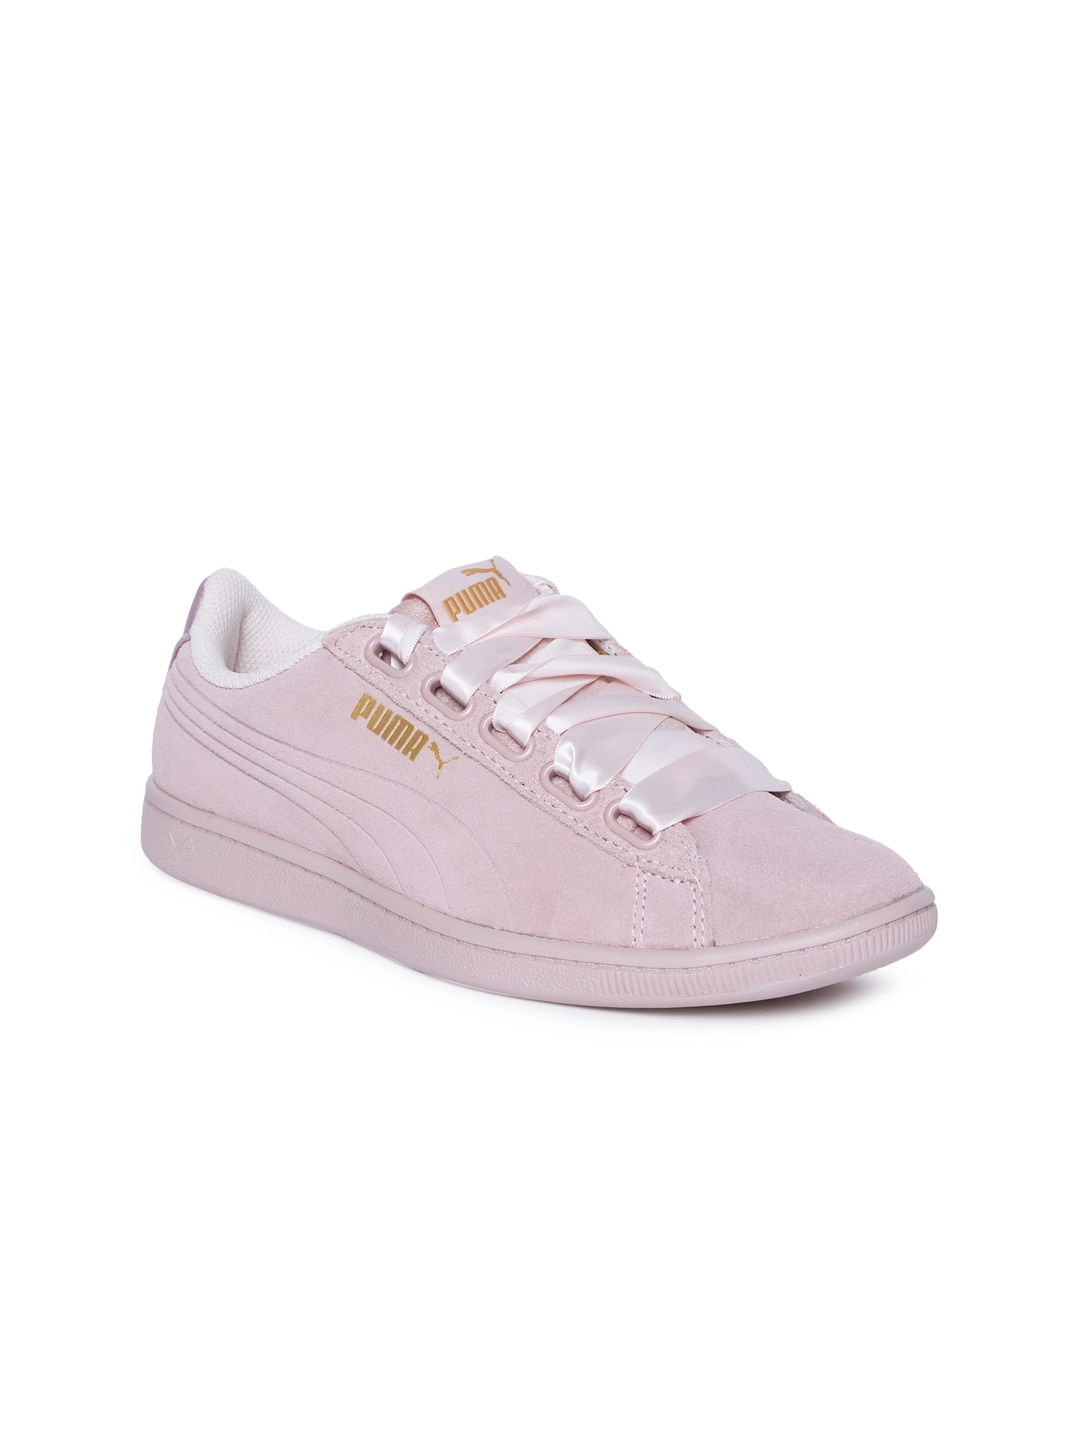 706a47dec24a Buy Puma Women Pink Platform Street 2 Suede Sneakers - Casual Shoes ...